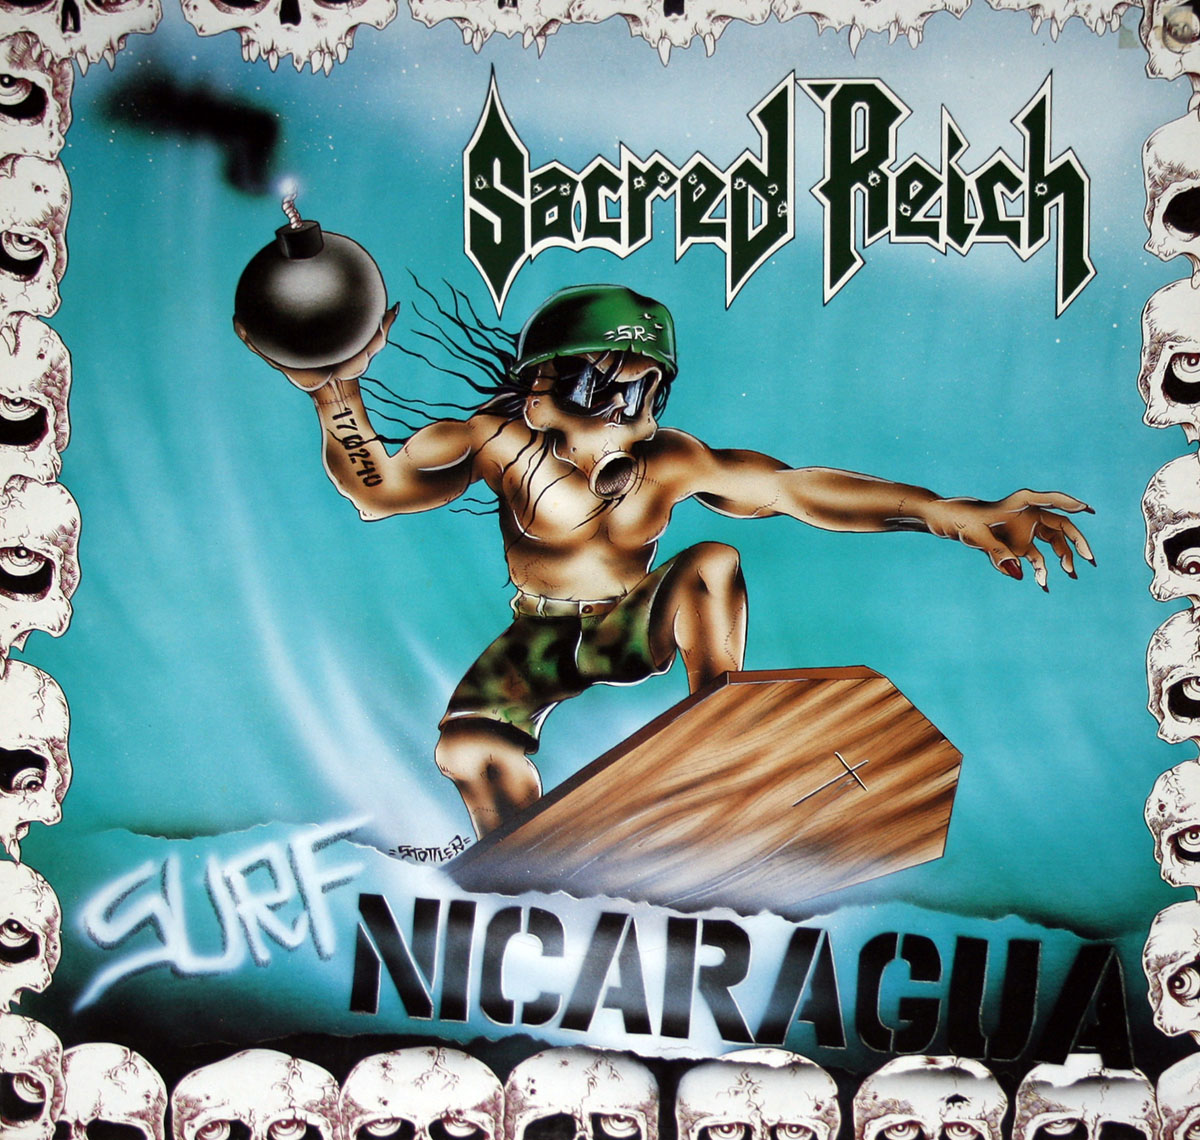 High Resolution Photo #10 Sacred Reich Surf Nicaragua